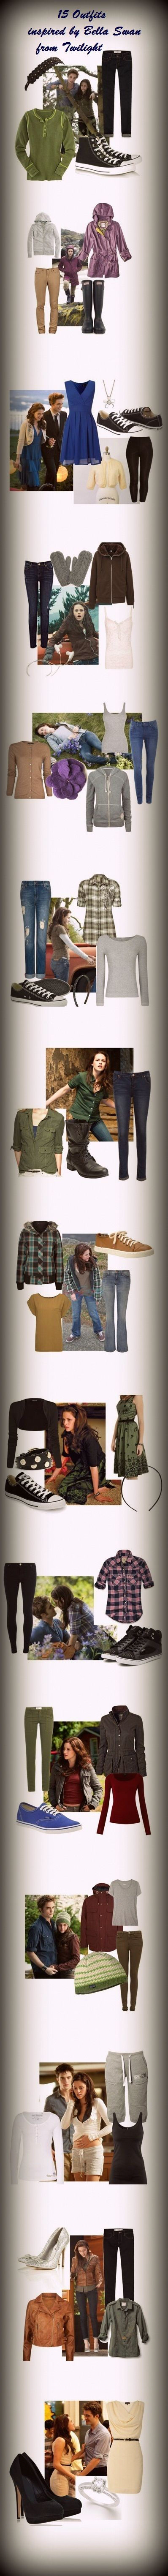 Nit really a twilight fan...but I like these clothes..Bella Swan inspired outfits